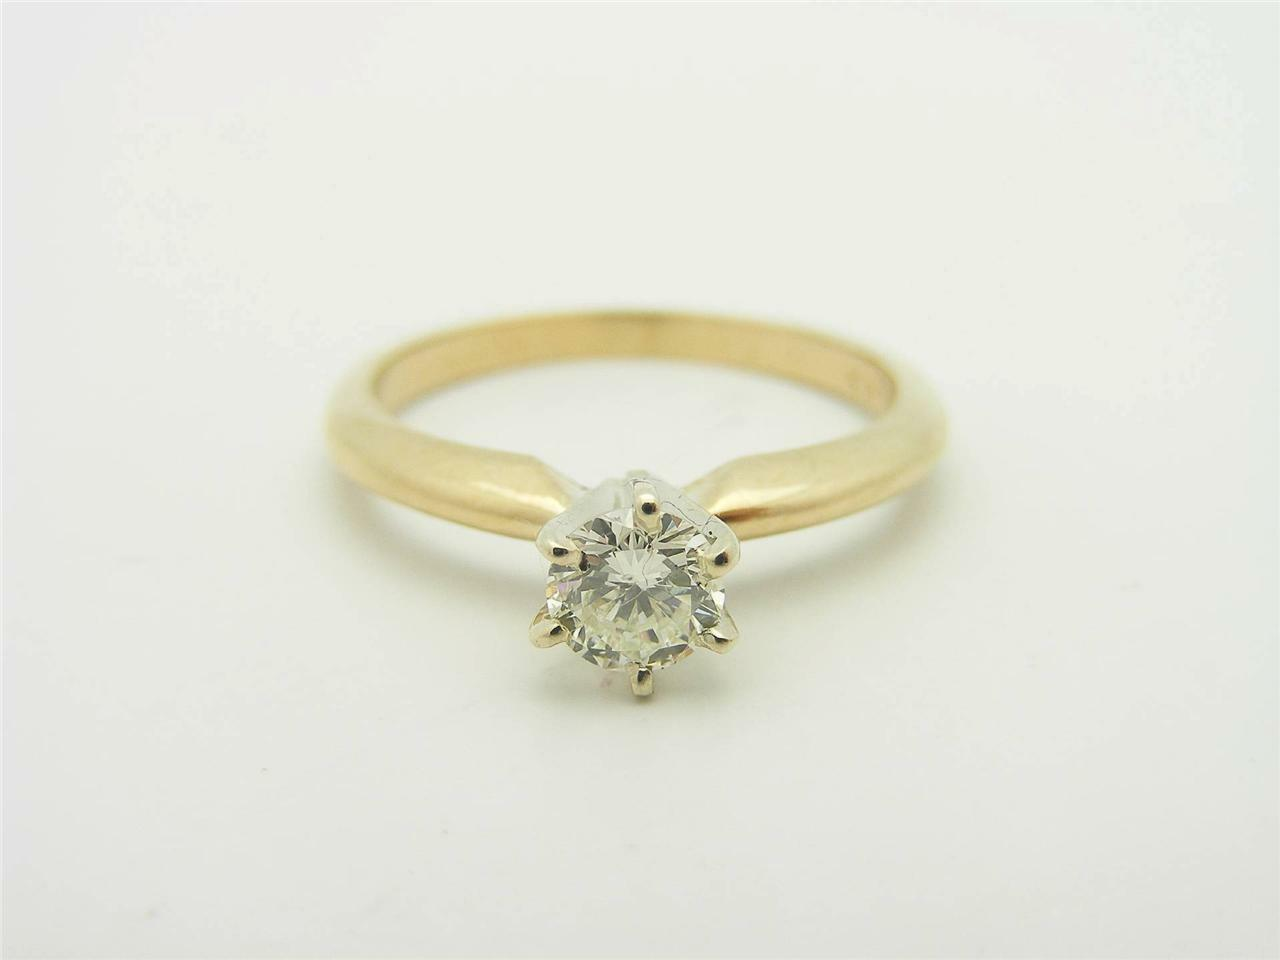 0.41 CARAT ROUND CUT DIAMOND SOLITAIRE ENGAGEMENT RING. 14K YELLOW gold